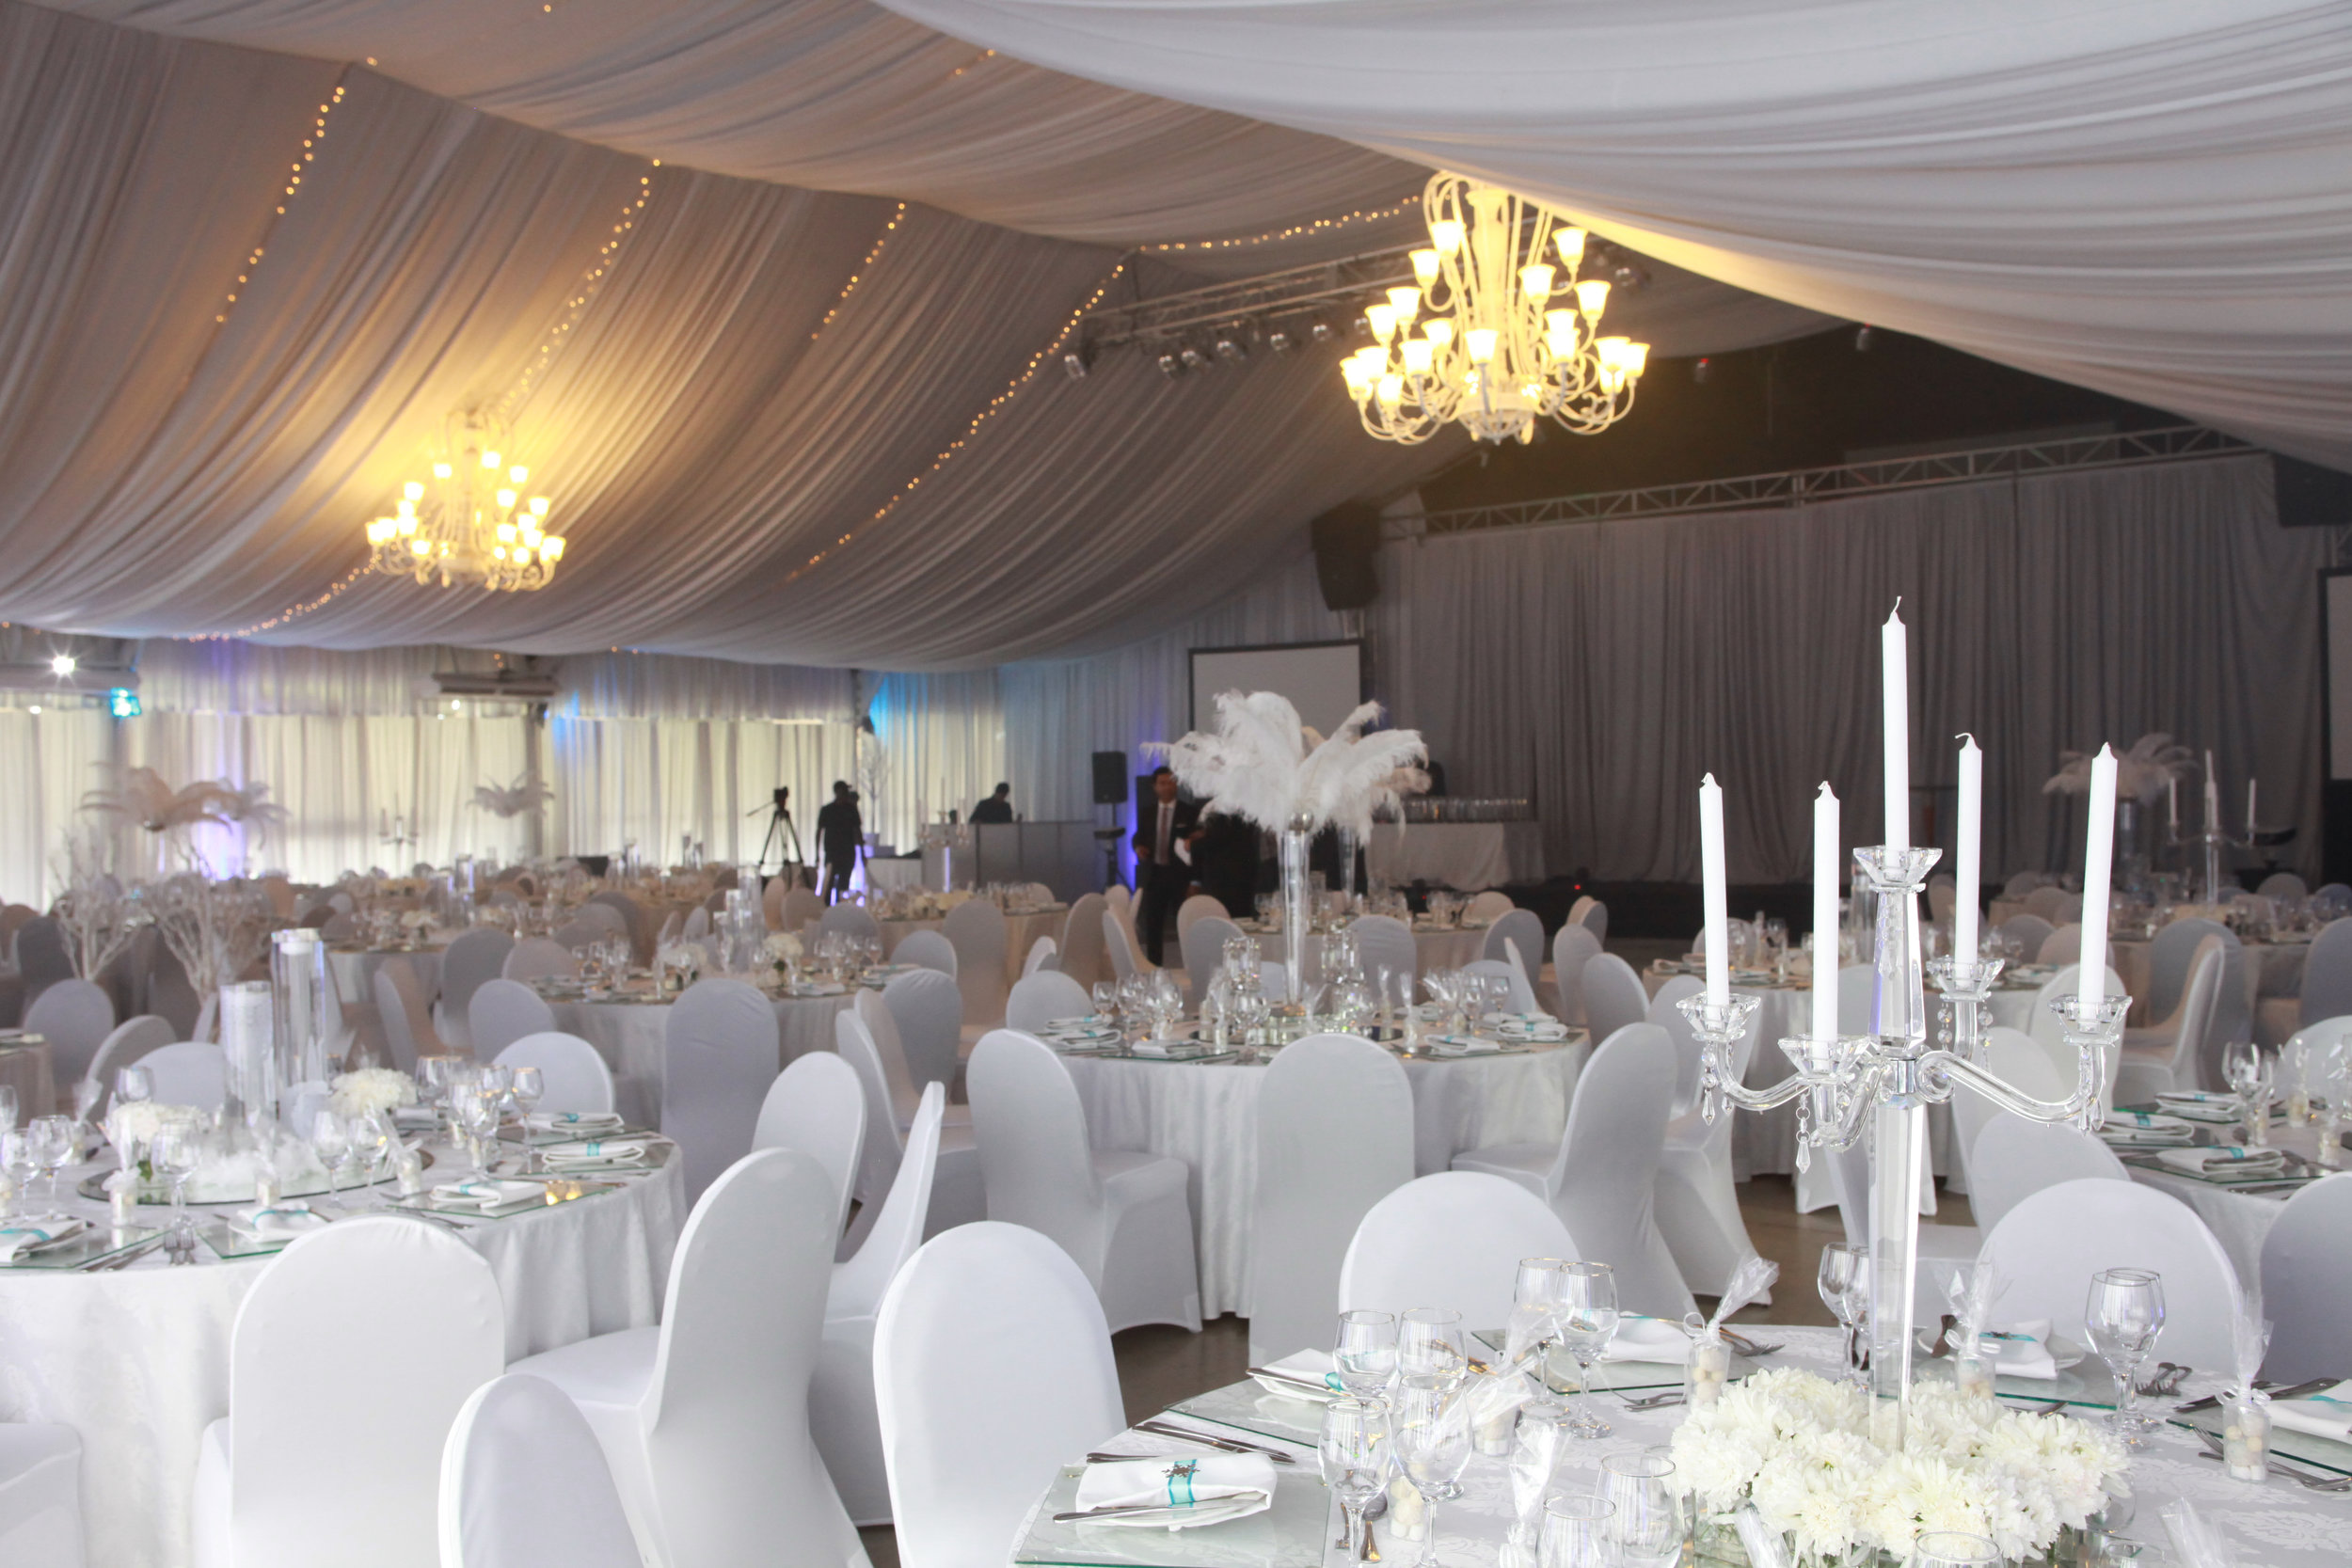 A picture from one of the events Charlene coordinated the decor for as an event planner.